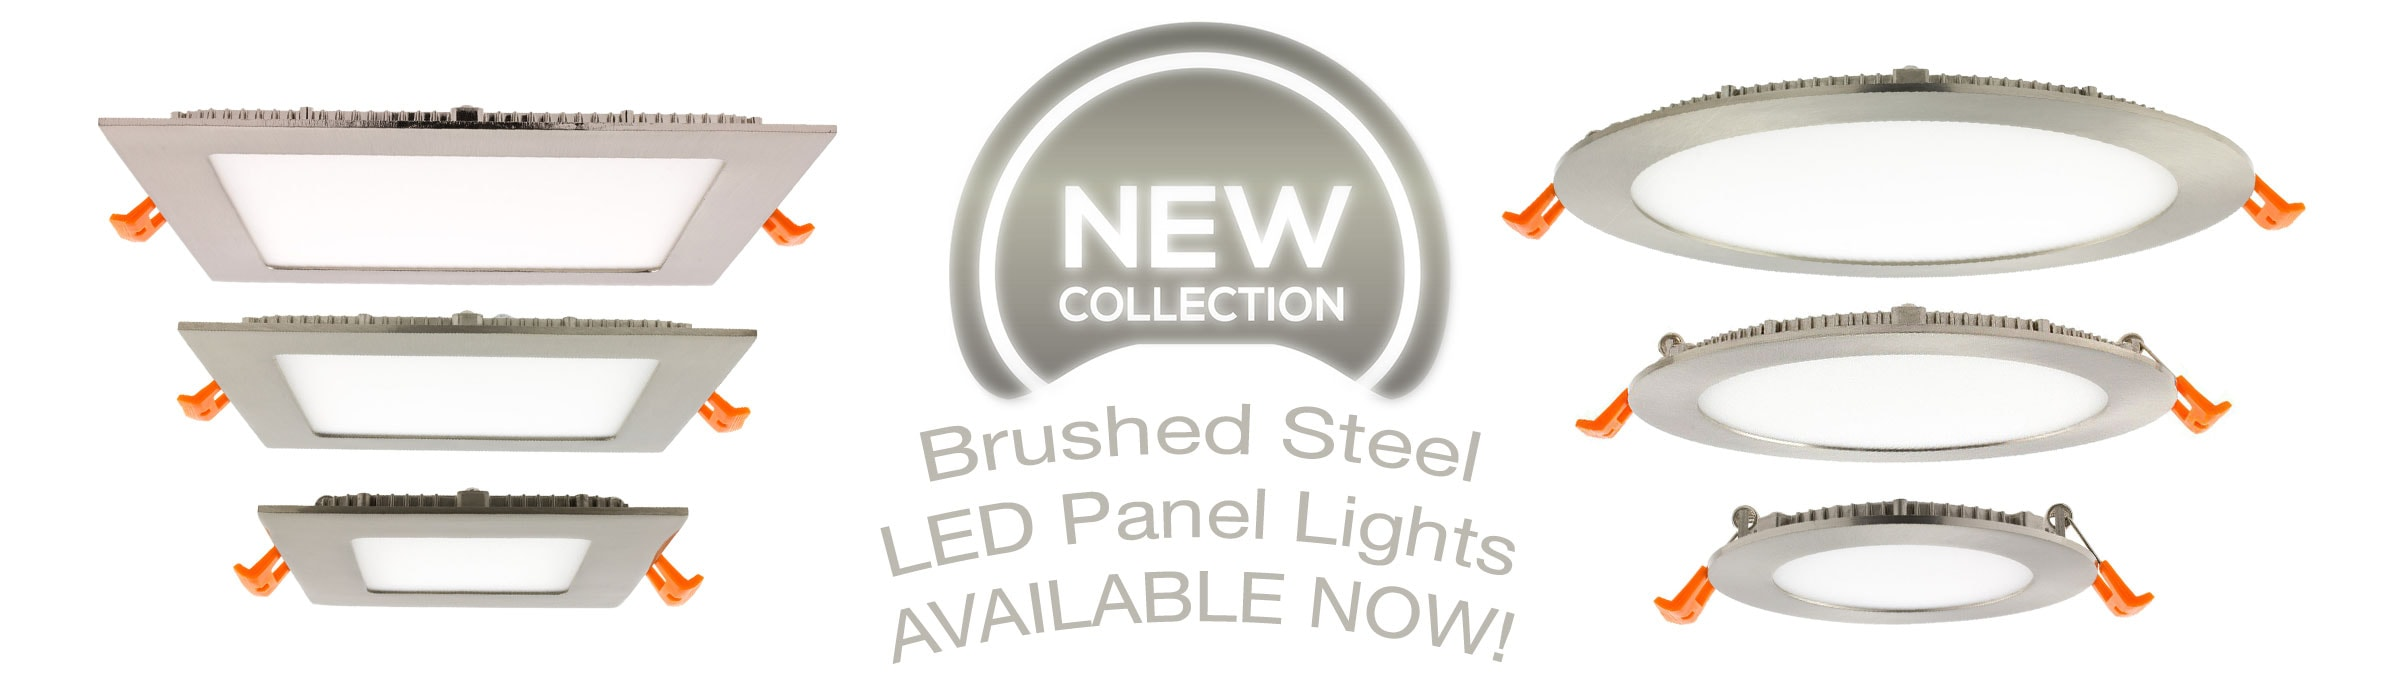 brushed-steel-led-panel-lights-available